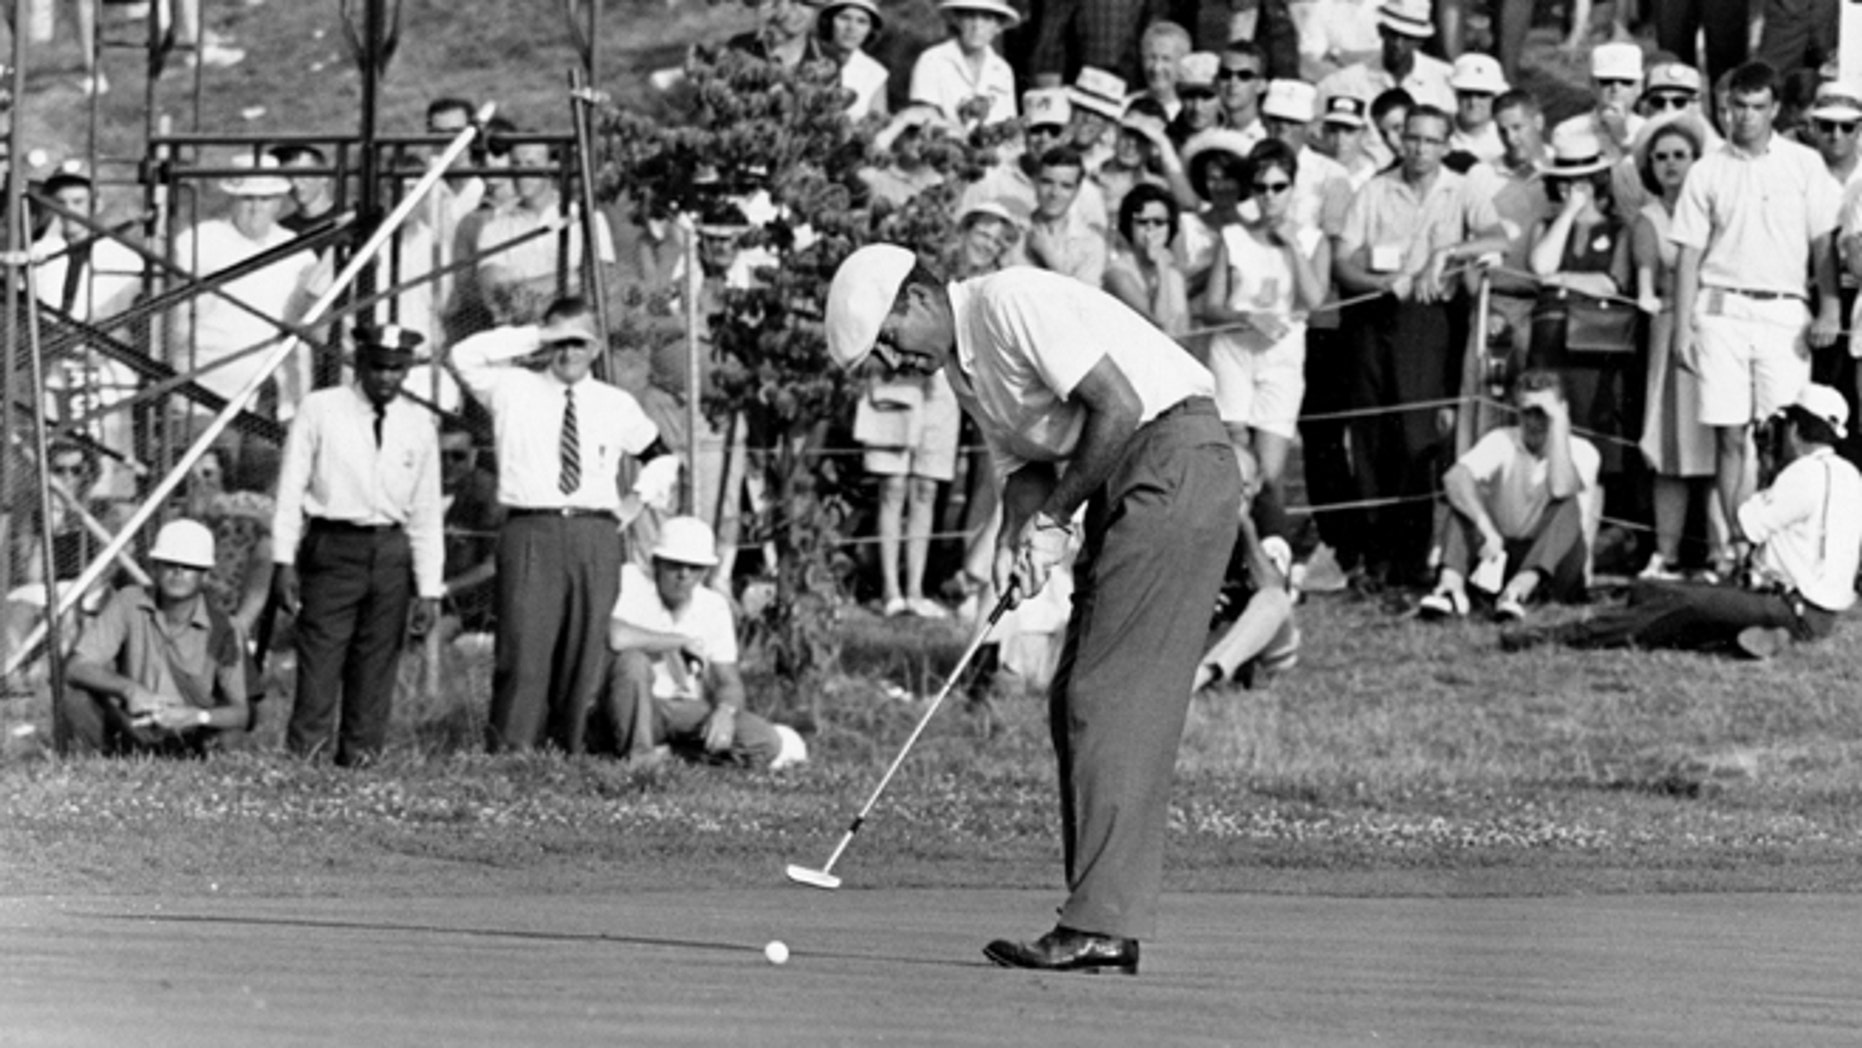 June 20, 1964: This file photo shows Ken Venturi making the final putt on the 18th green during the U.S. Open Golf Championship at Congressional Country Club in Bethesda, Md.